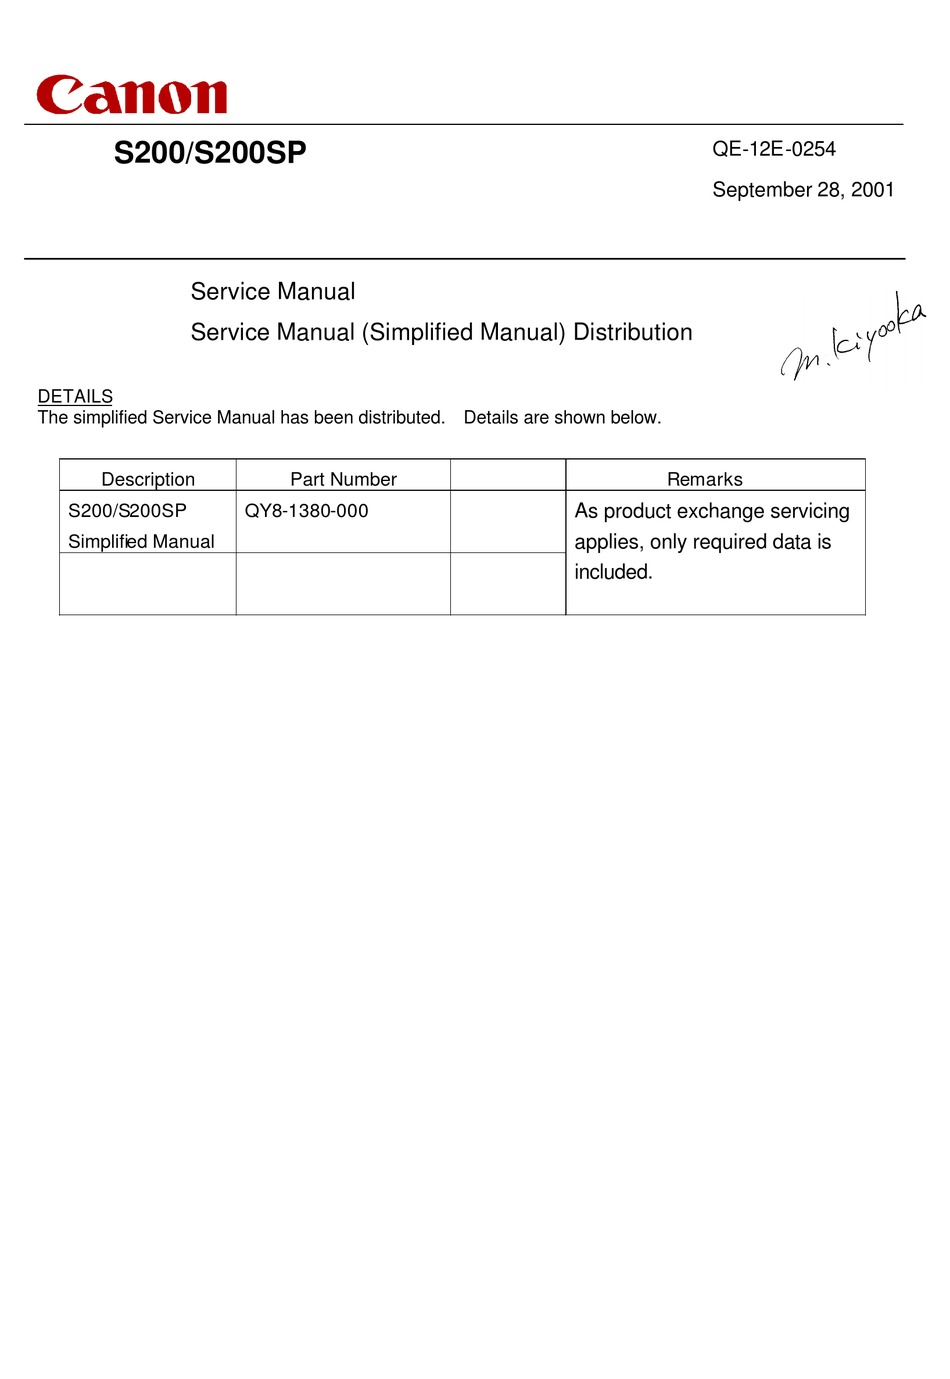 Canon S200 Simplified Service Manual Pdf Download